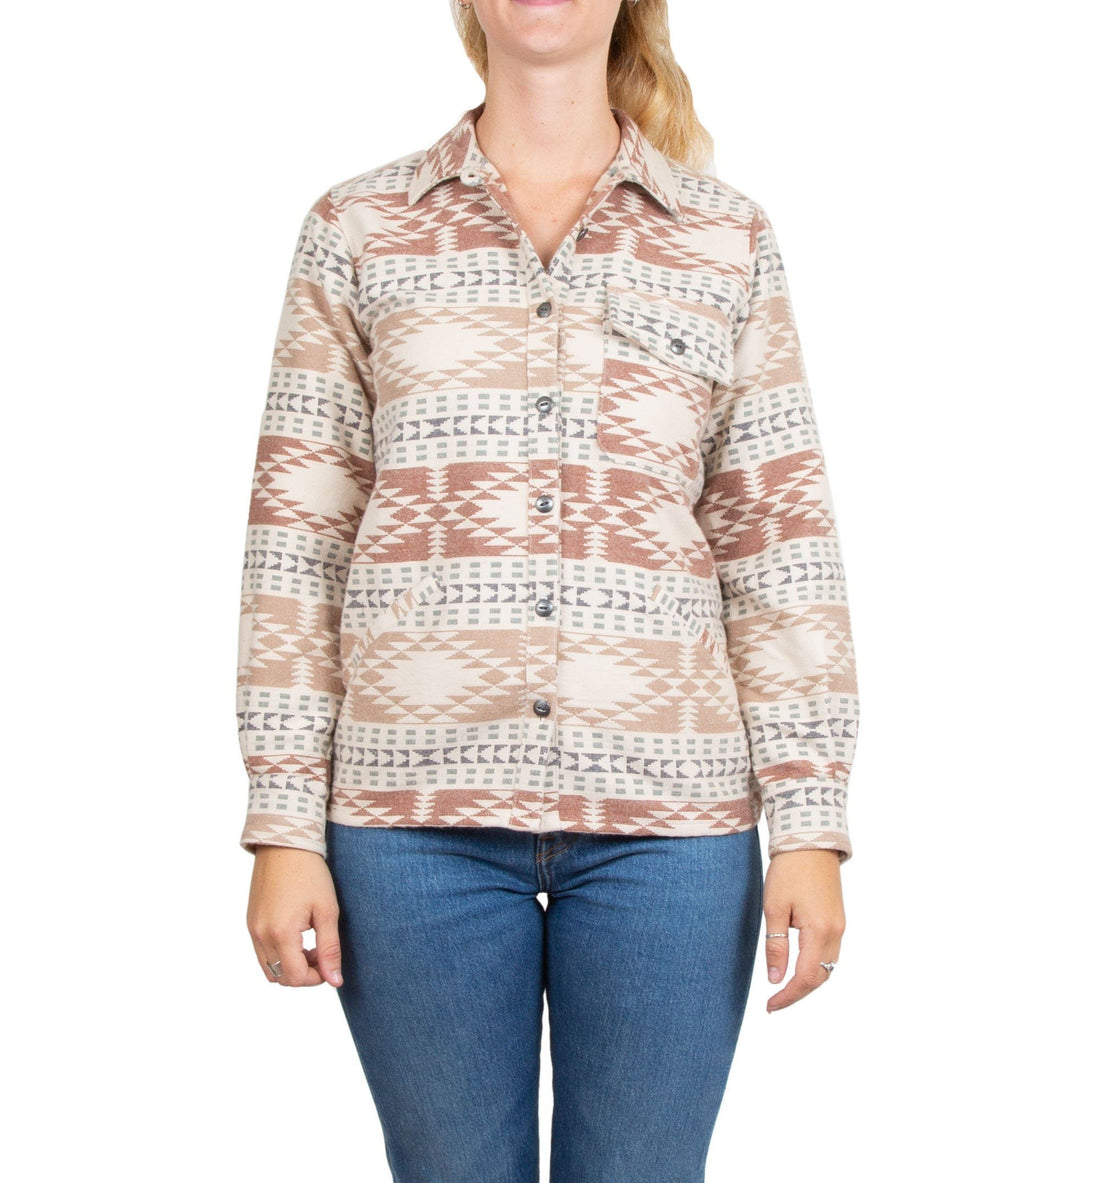 Women's Native Shirt Jacket - Tops - Iron and Resin